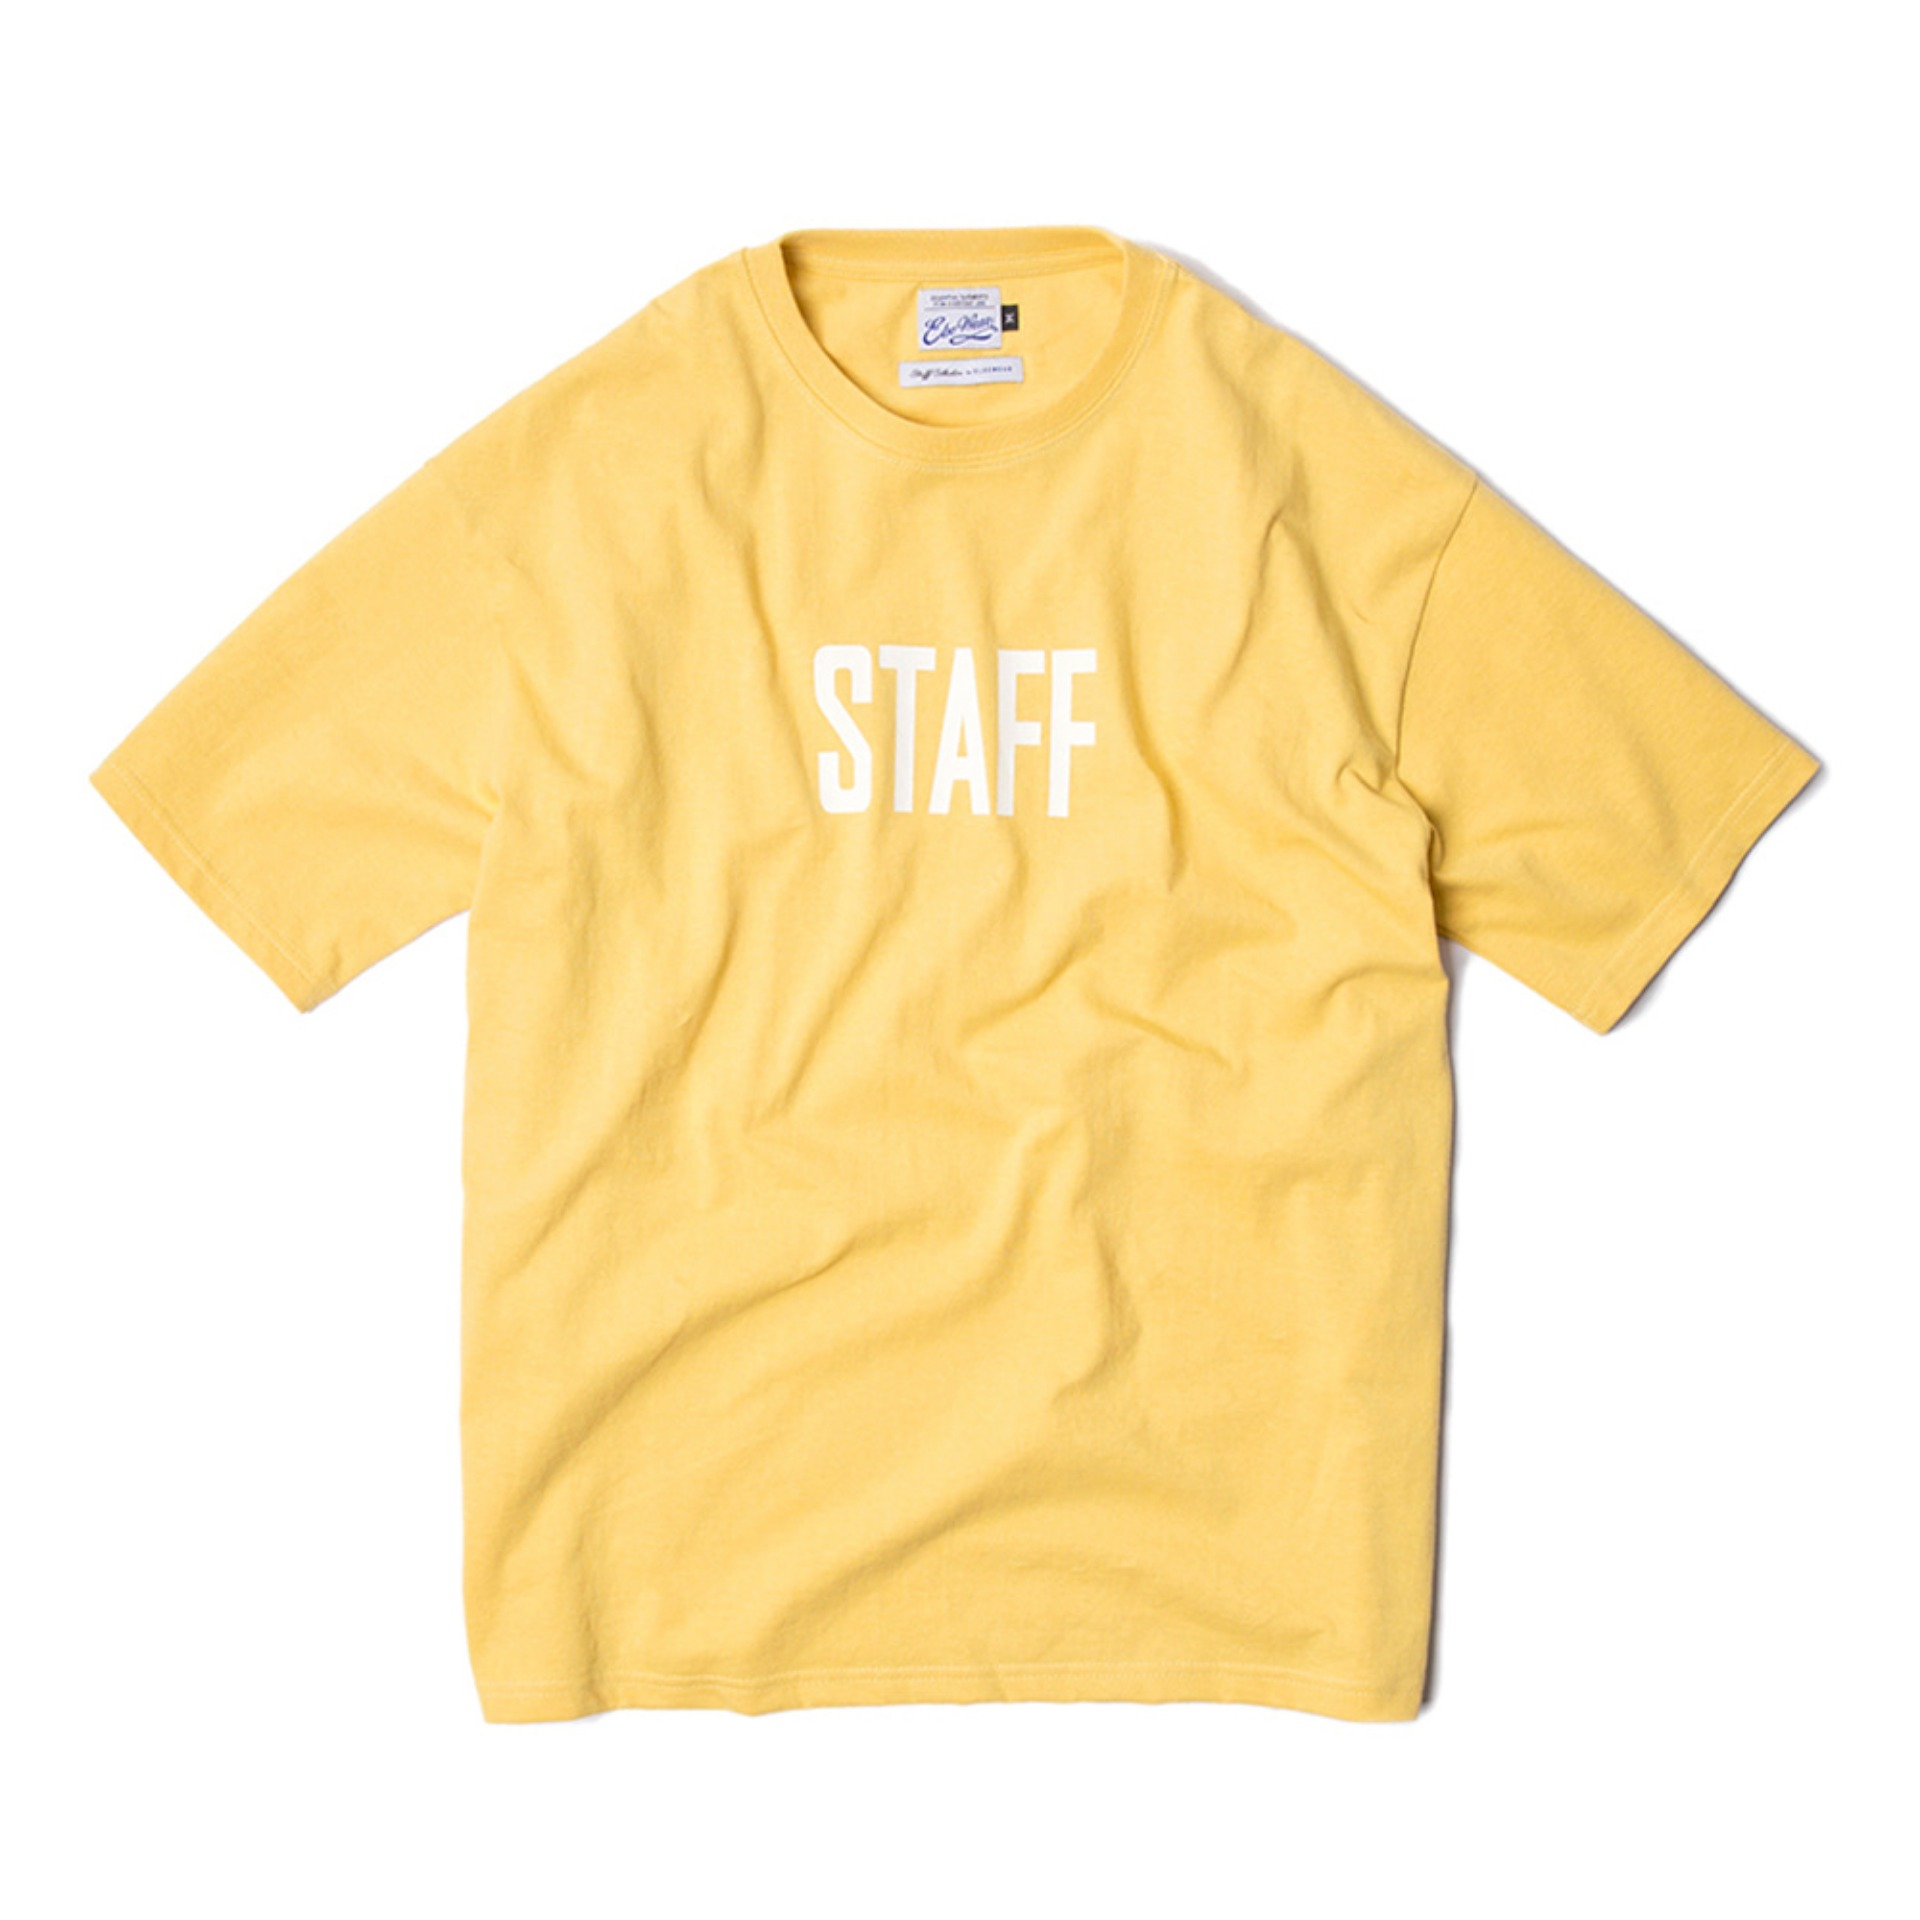 STAFF T-SHIRTS(YELOW)